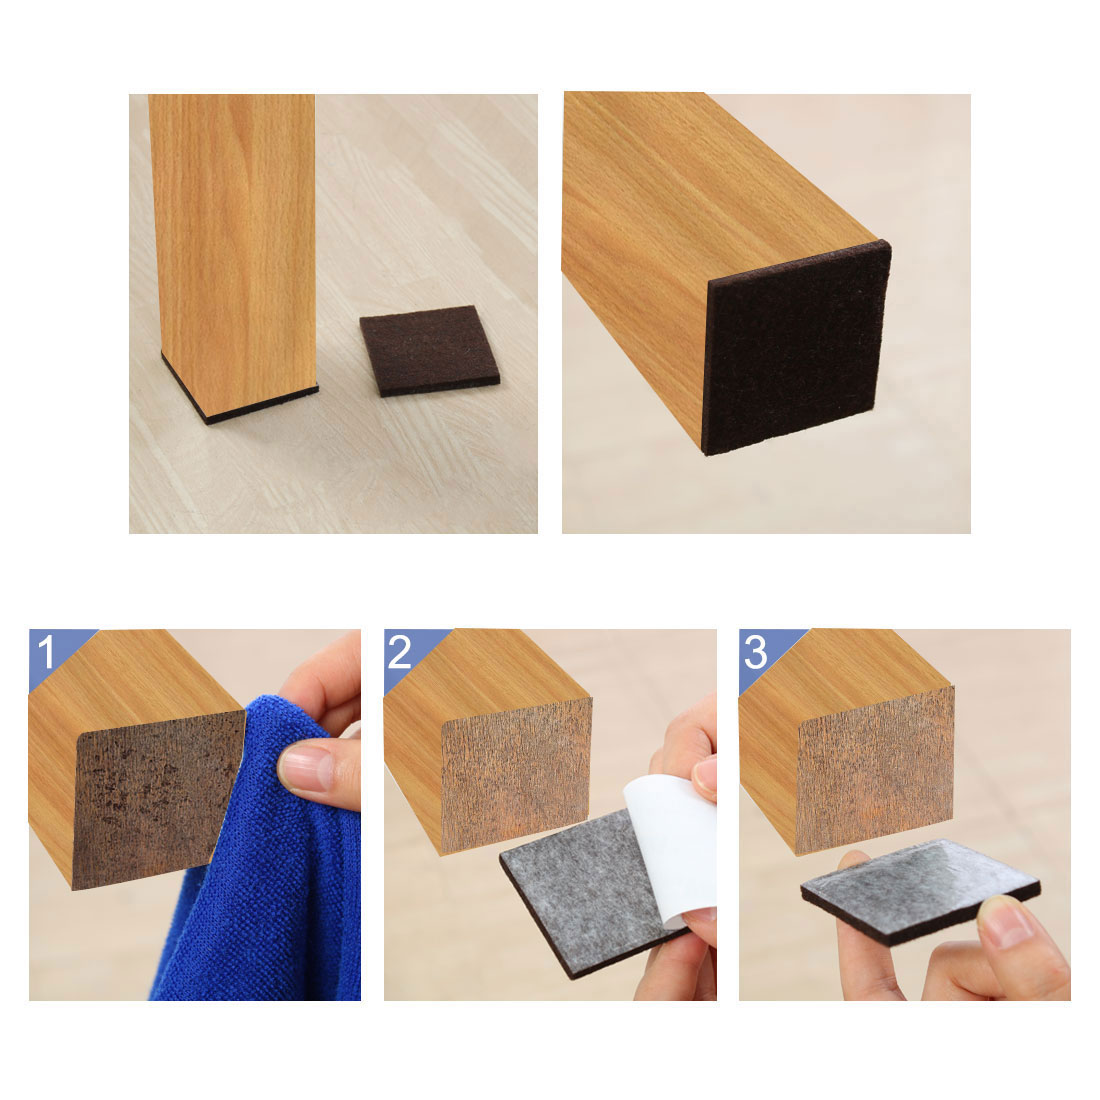 "Felt Furniture Pads Square 7/8"" Self Adhesive Anti-scratch Floor Protector 70pcs - image 6 de 7"